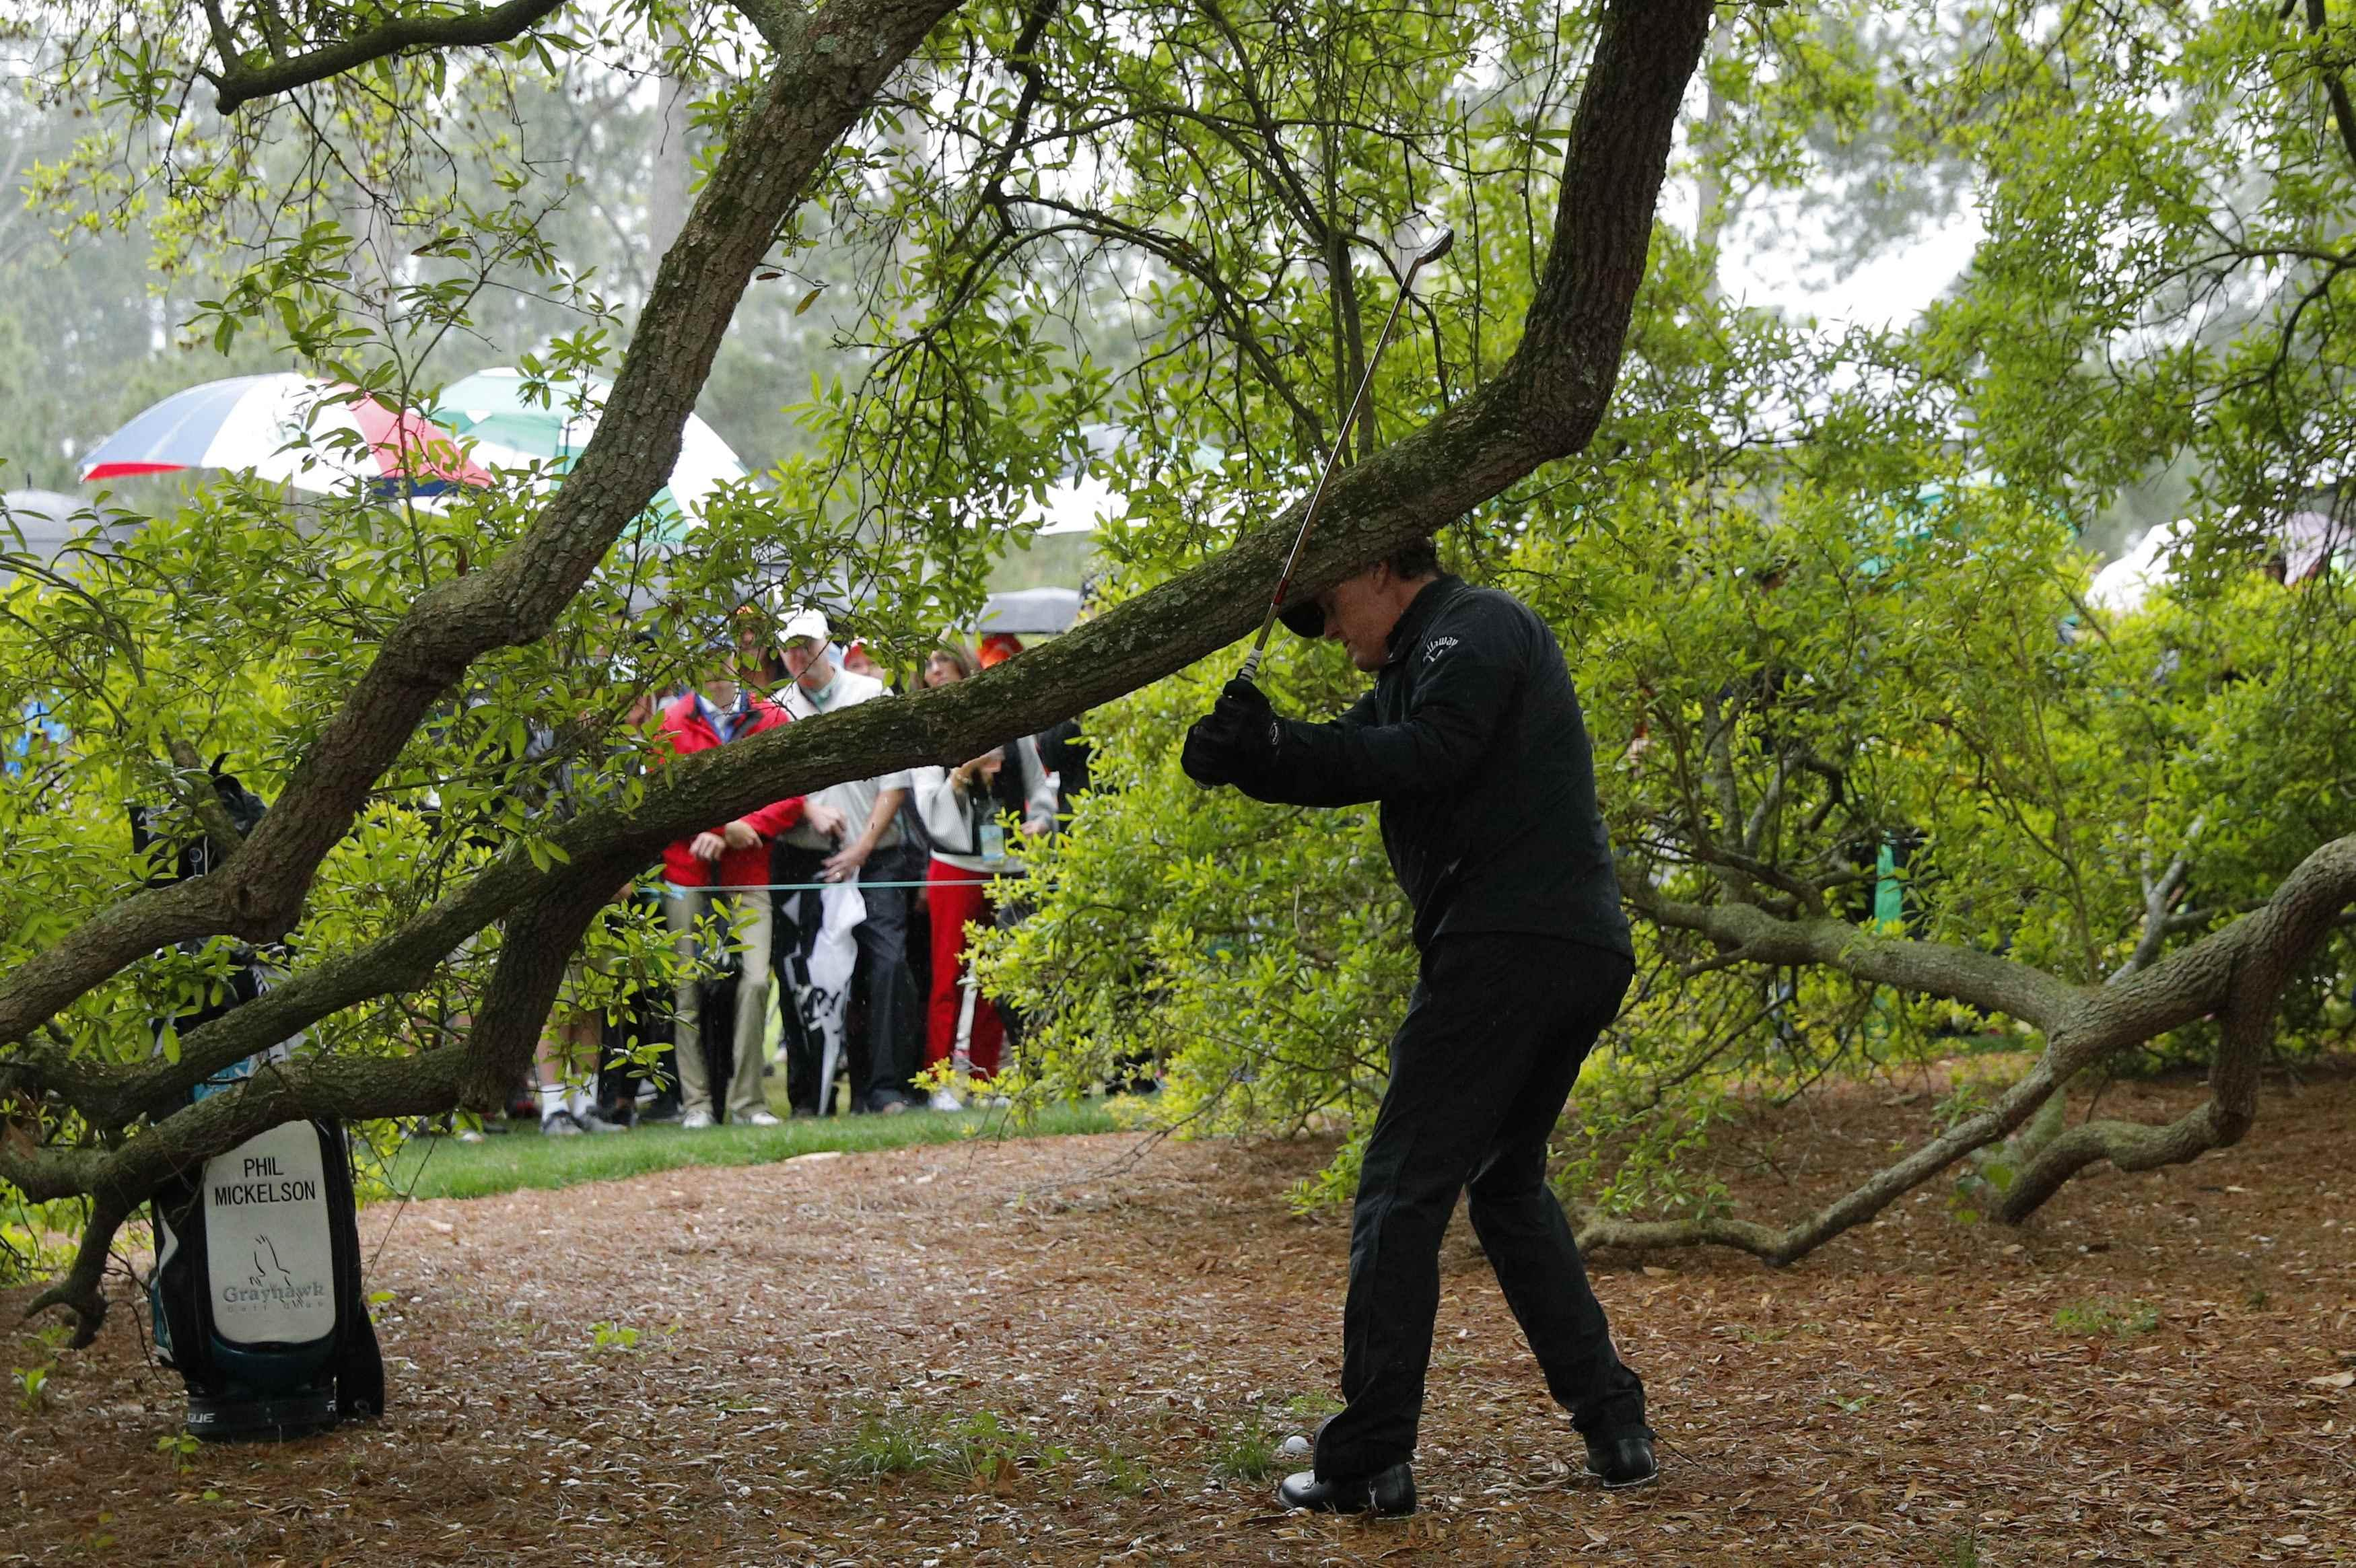 Phil Mickelson practises his backswing with the branch in his way